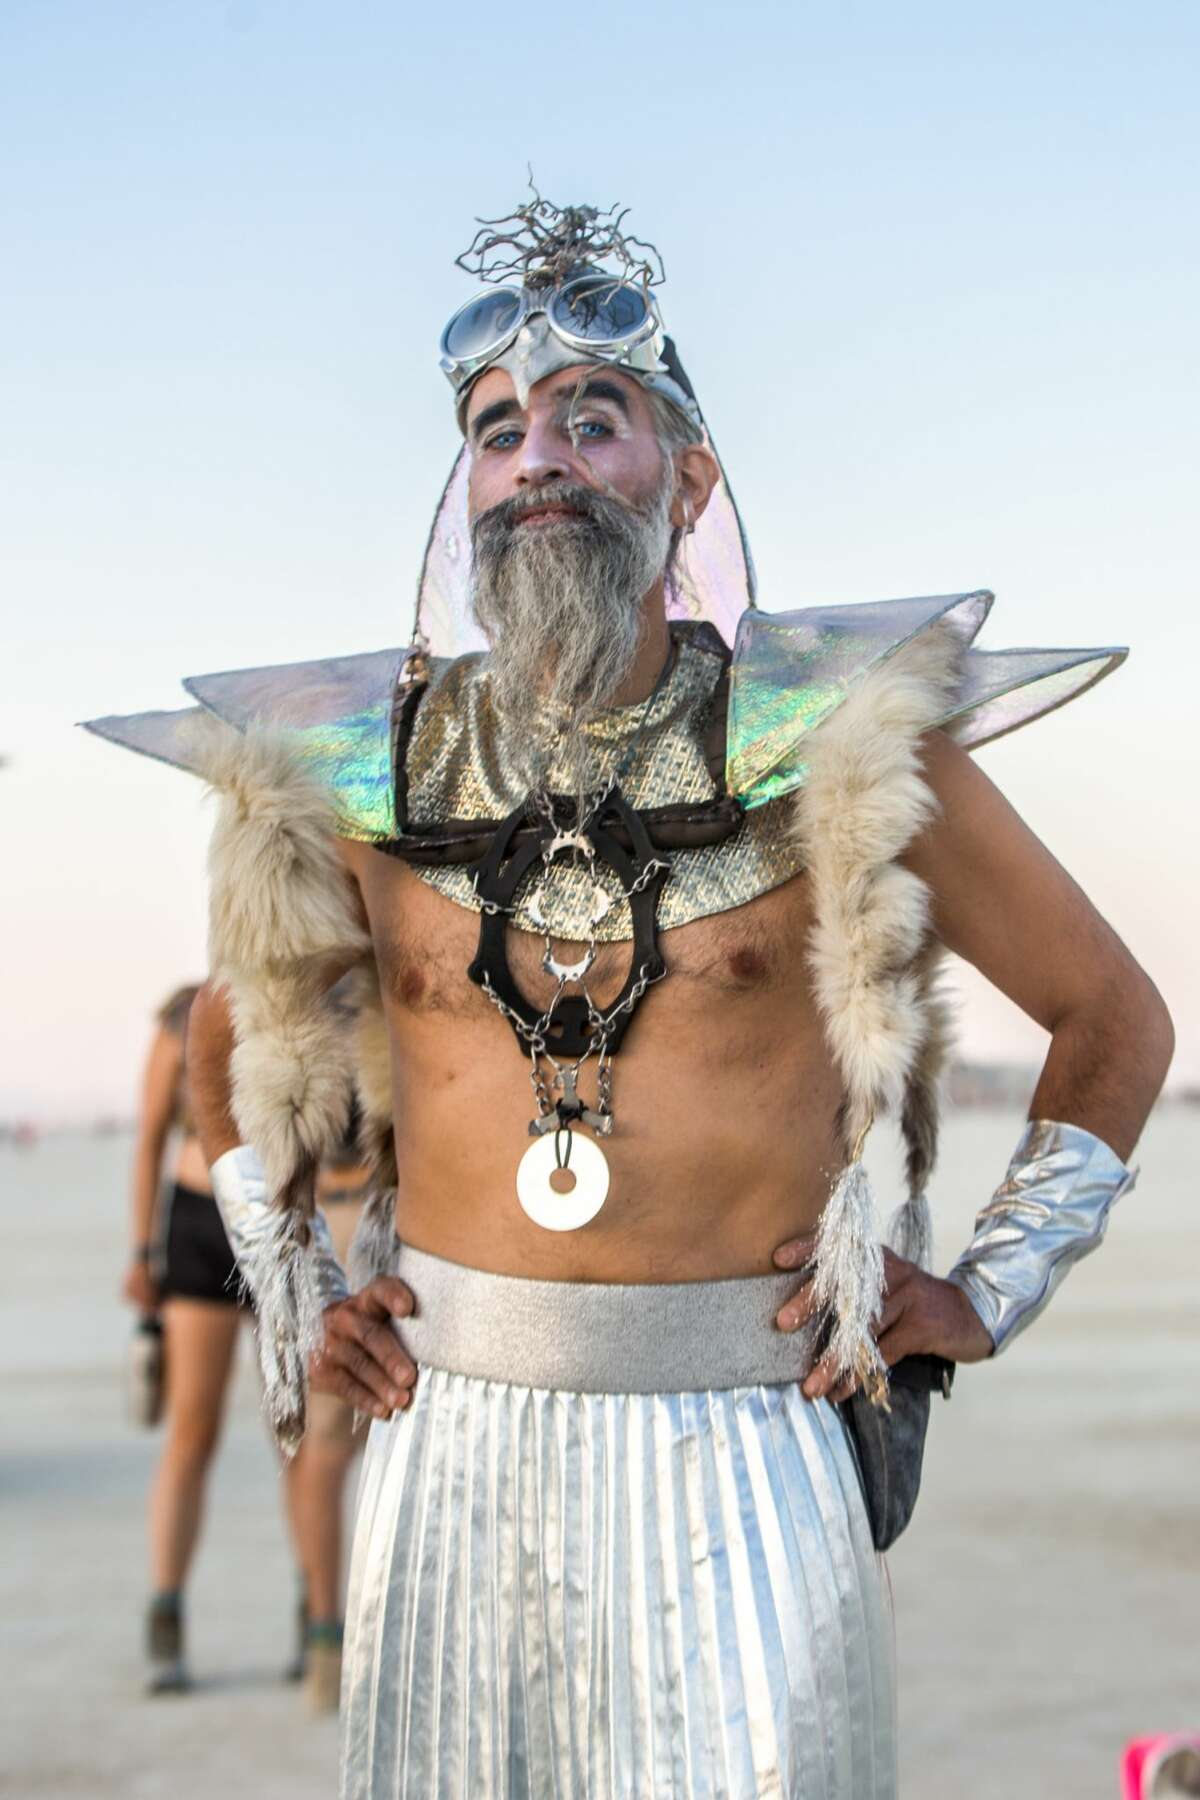 Participants at Burning Man 2018 show off their Black Rock City style.